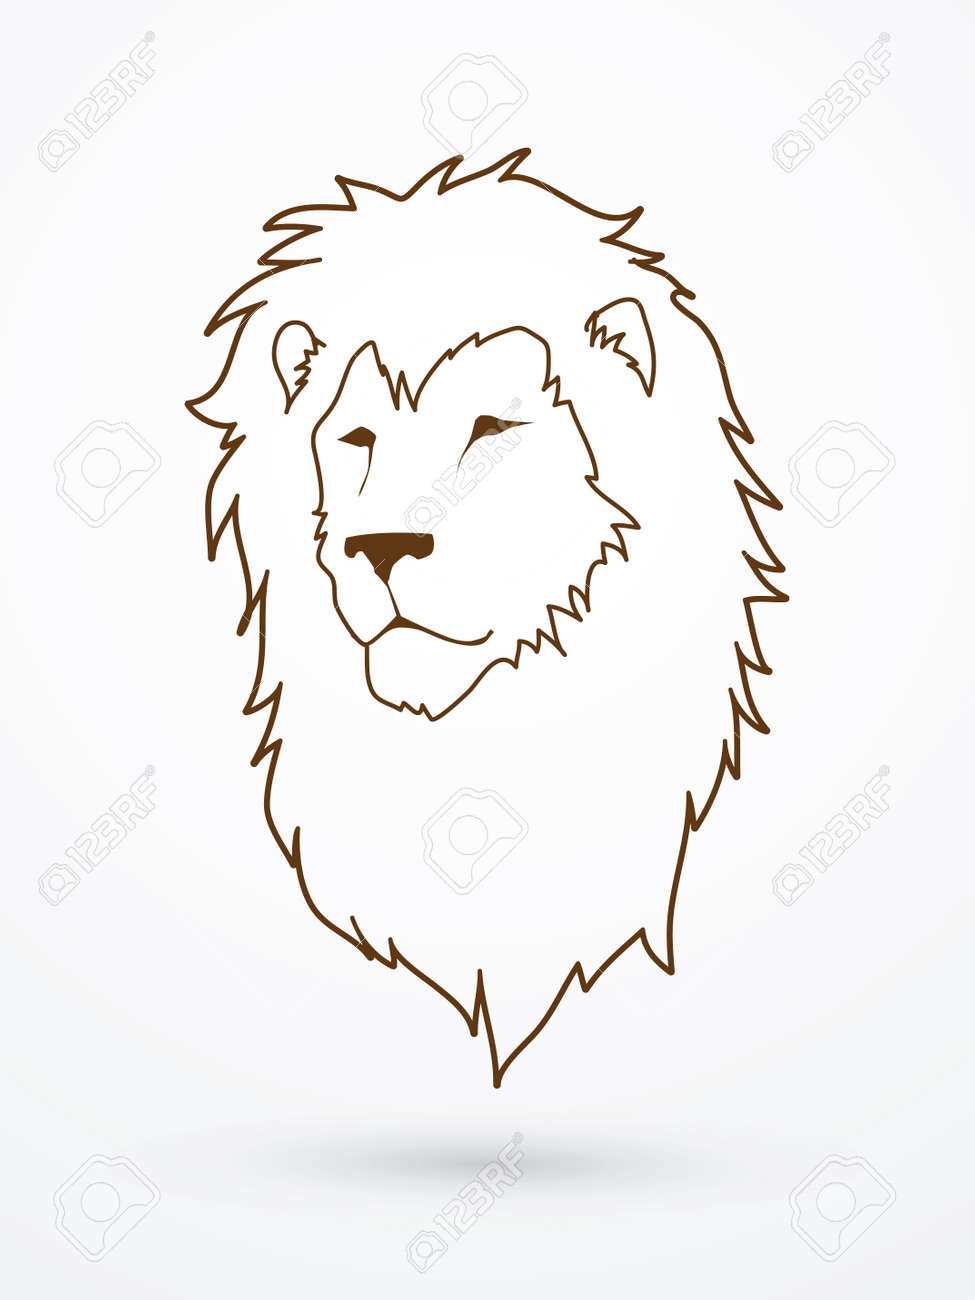 Lion Head Outline Graphic Vector Royalty Free Cliparts Vectors And Stock Illustration Image 66646814 Download this free icon about lion face outlined front, and discover more than 10 million professional graphic resources on freepik. lion head outline graphic vector